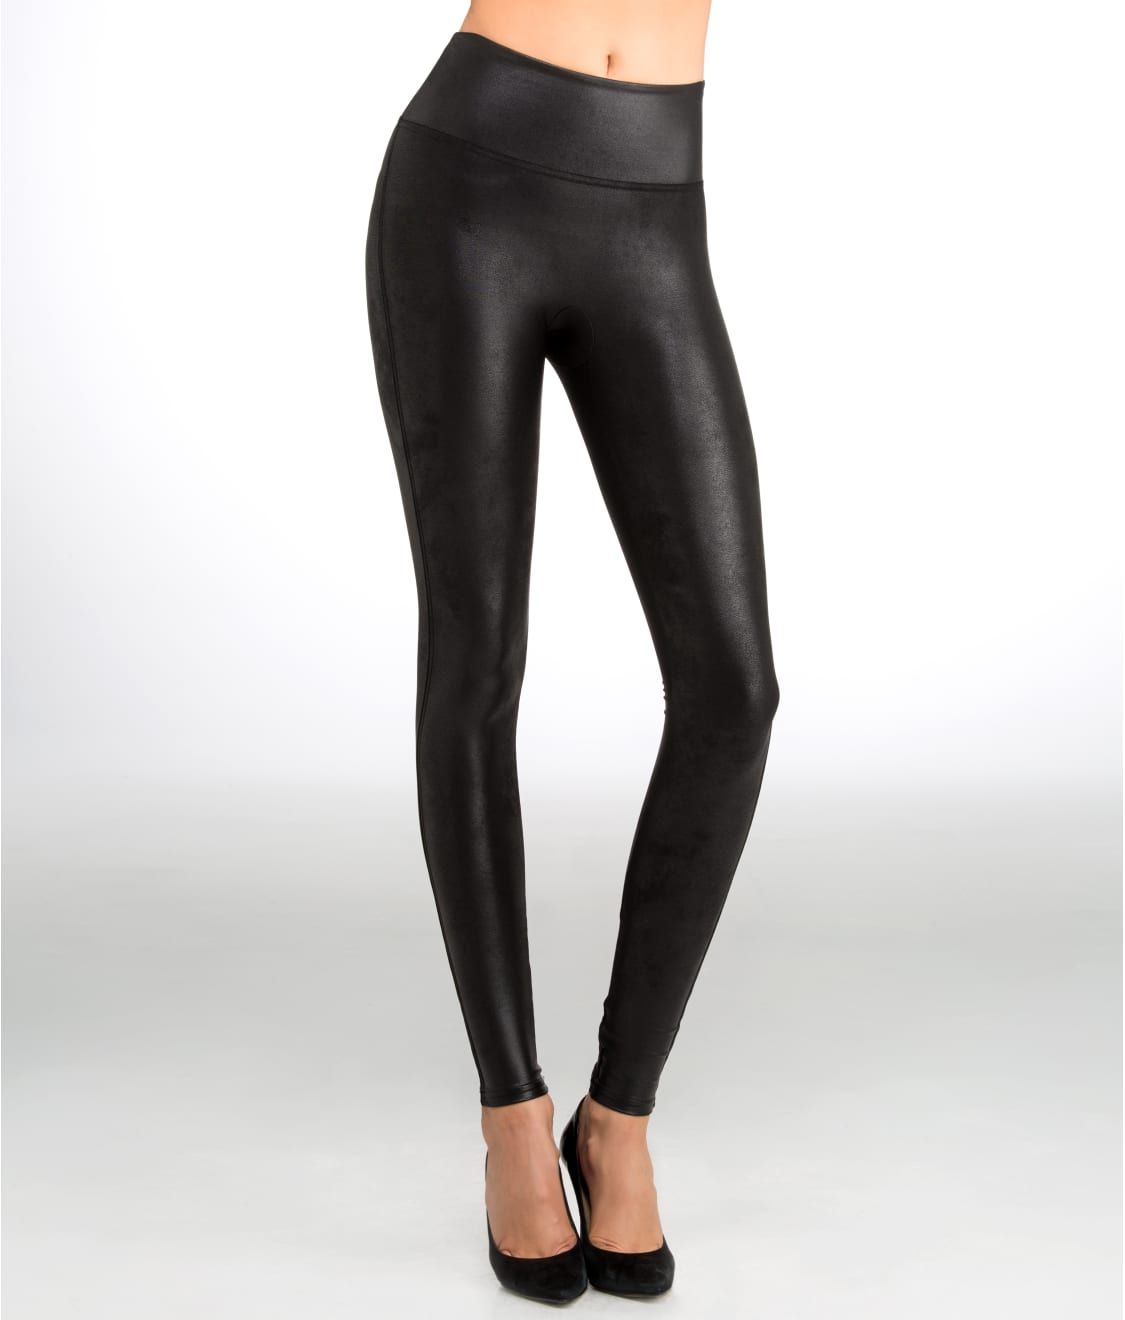 dd436a2b49d4 SPANX Ready-to-Wow Faux Leather Leggings